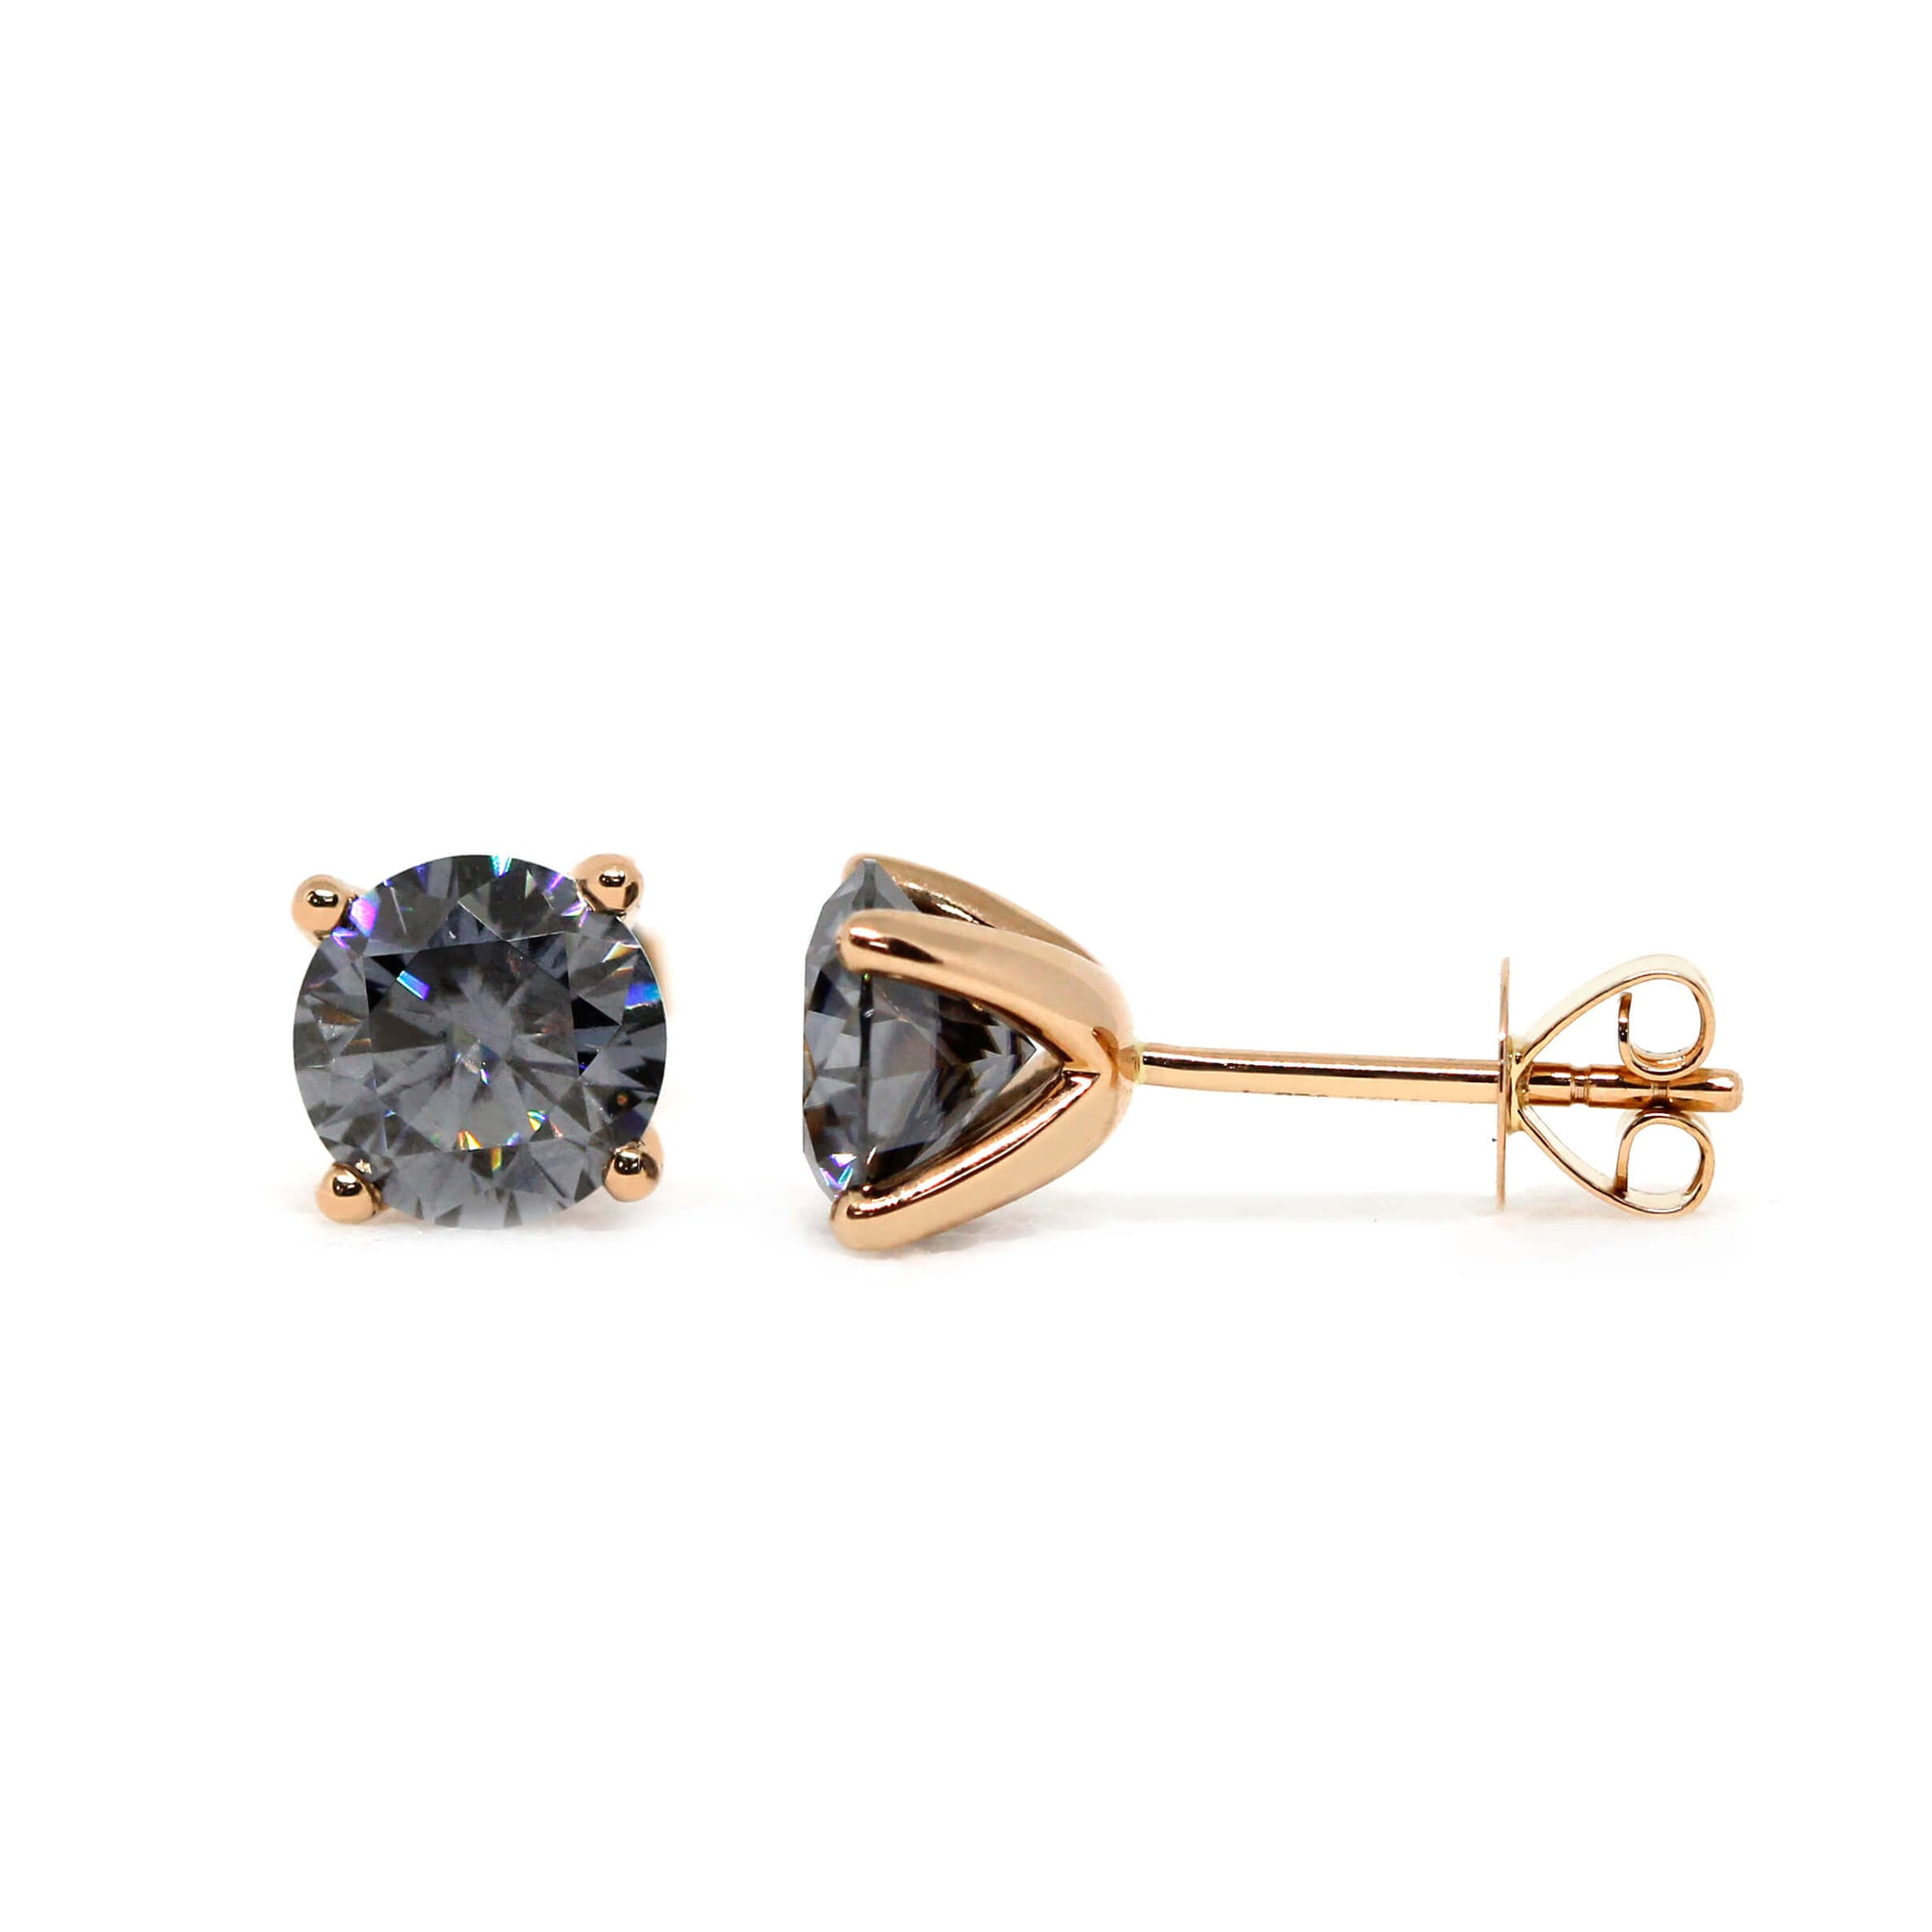 Grey Moissanite Solitaire 18K Rose Gold Stud Earrings